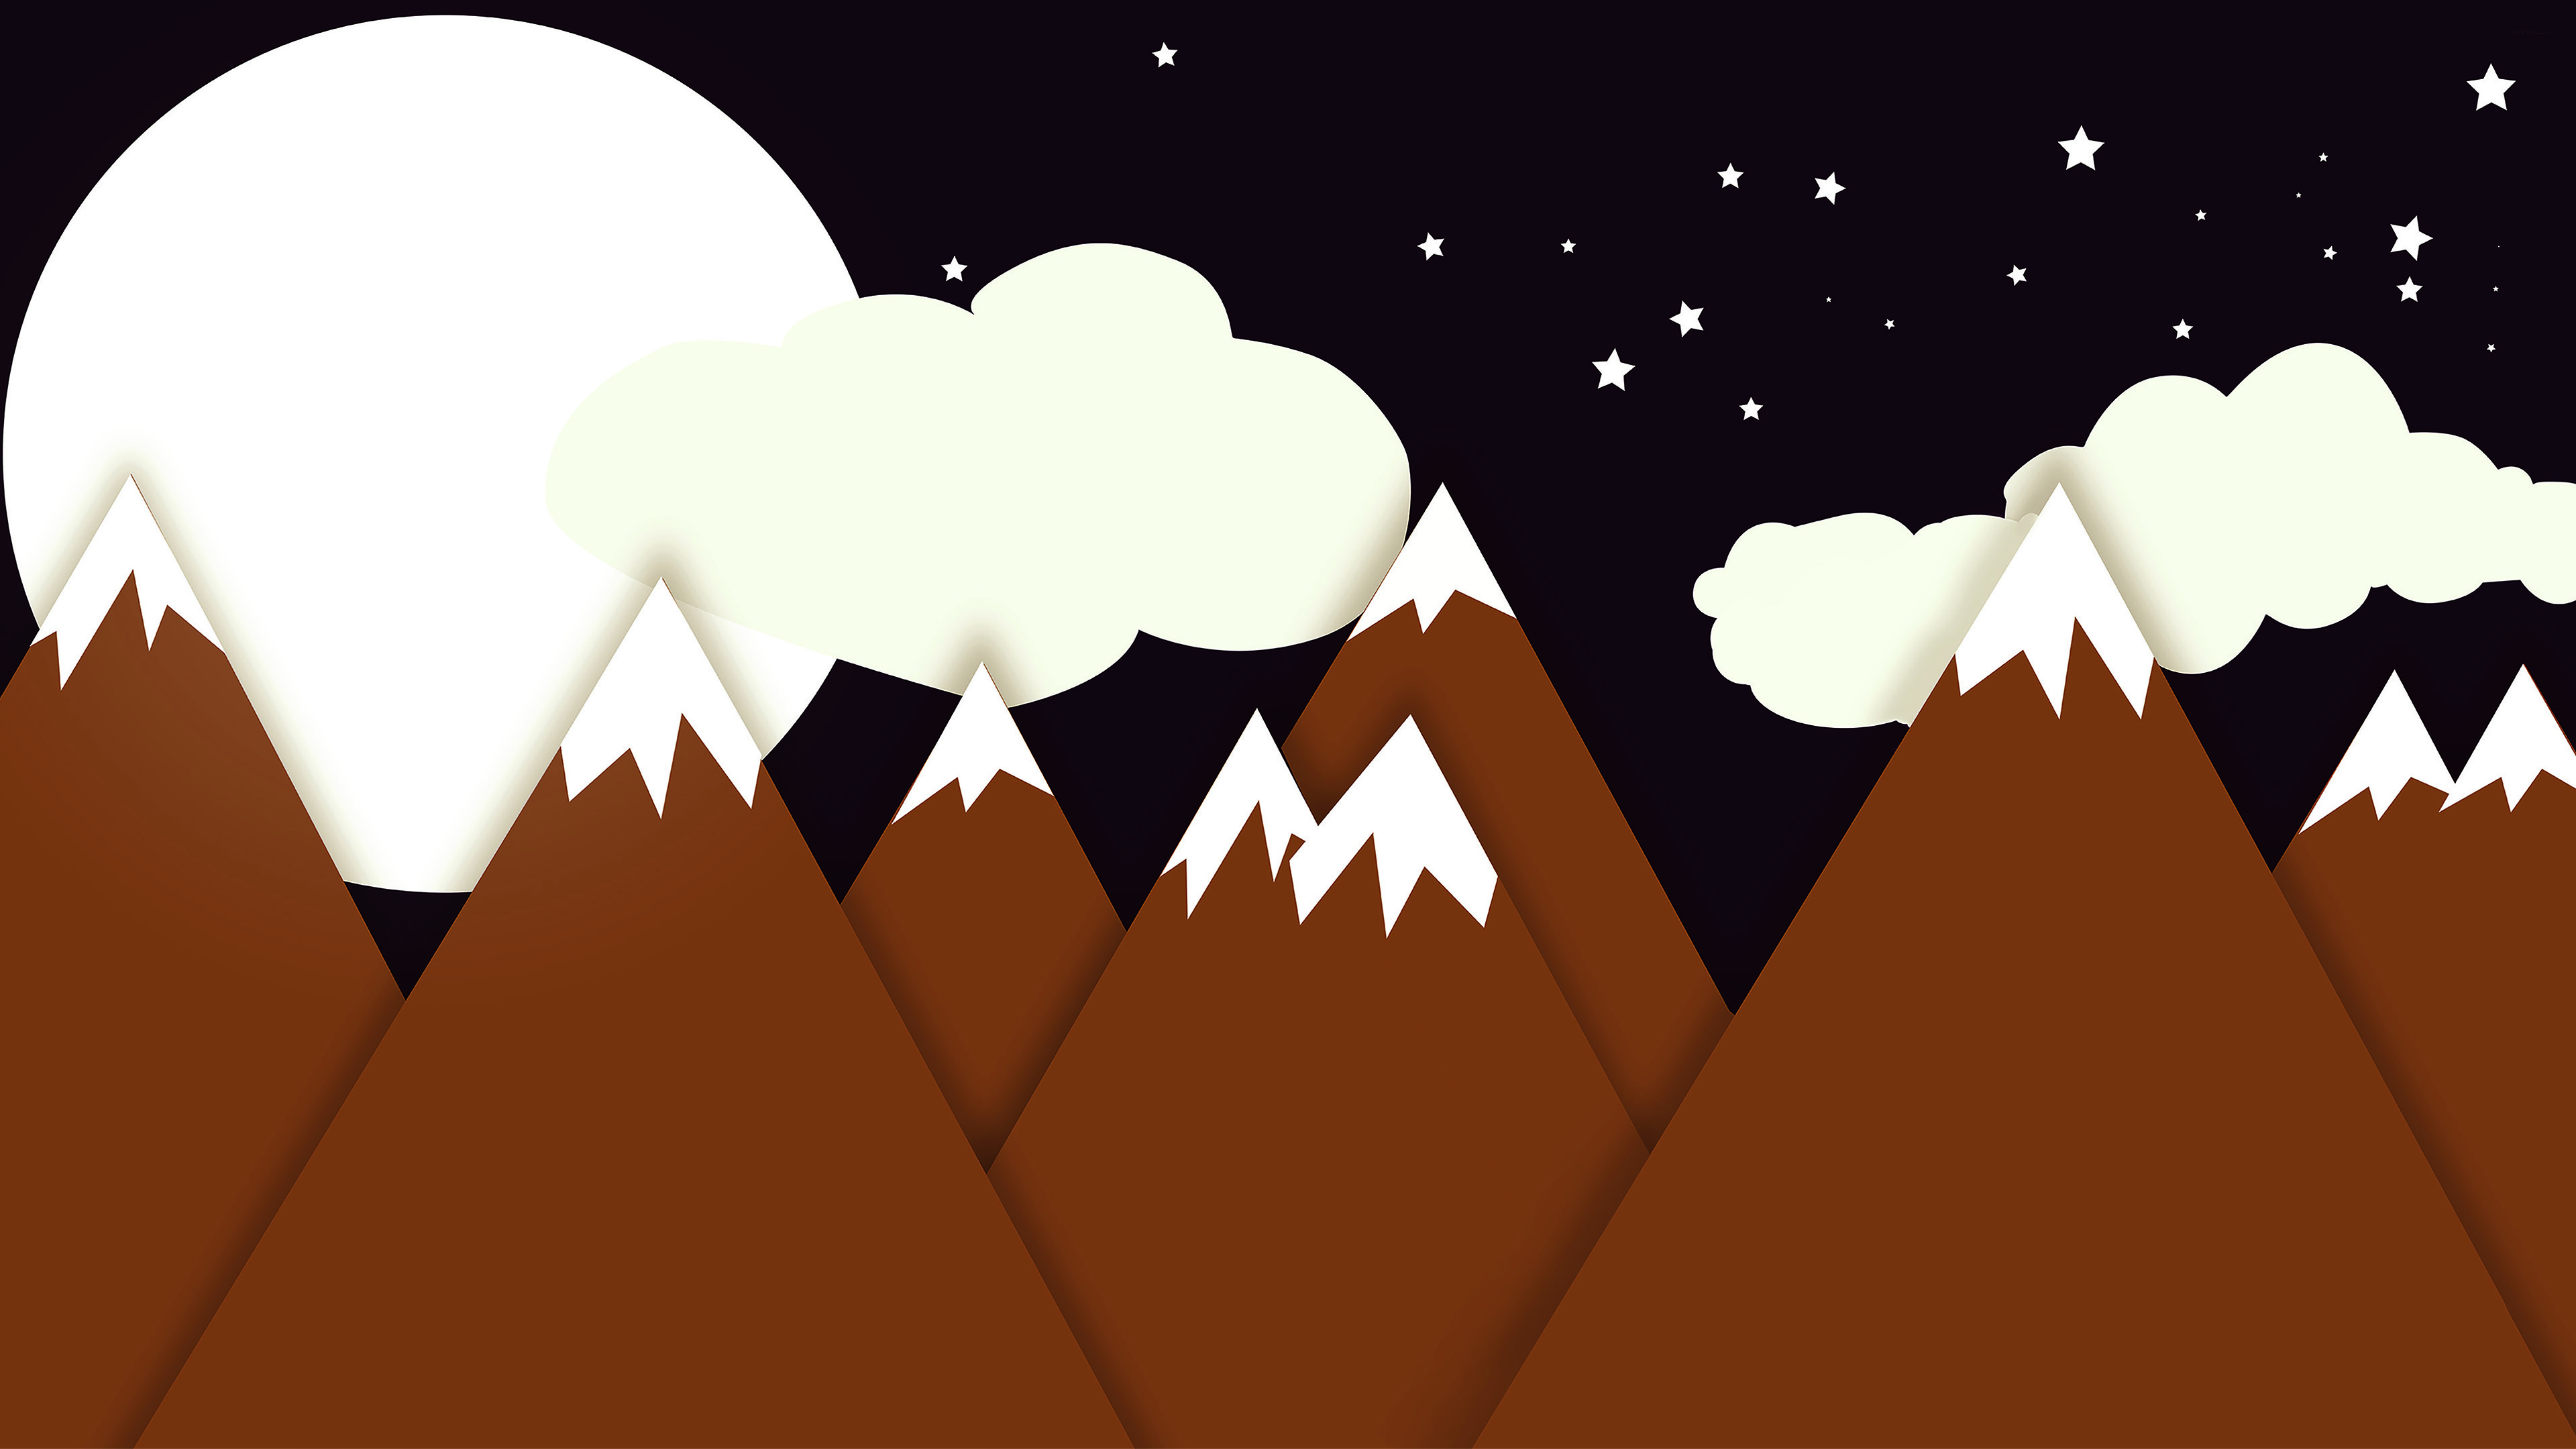 Cool Wallpaper Mountain Cartoon - mountain-minimalistic-4k-50974-3840x2160  Picture_139766.jpg